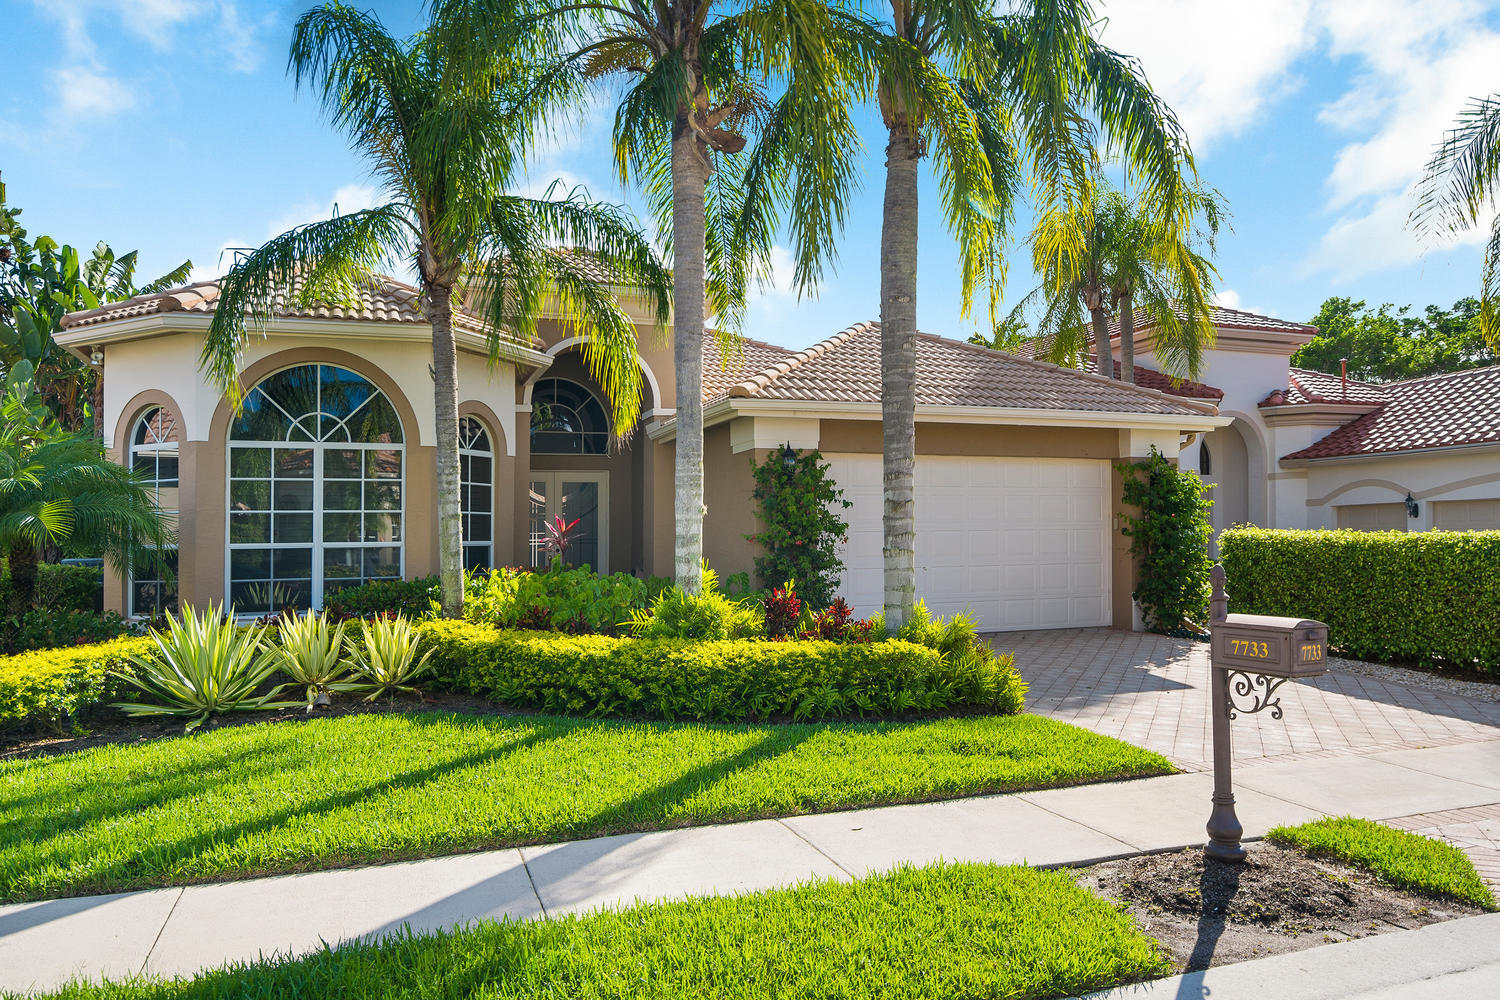 7733 Sandhill Court, West Palm Beach, Florida 33412, 3 Bedrooms Bedrooms, ,3 BathroomsBathrooms,A,Single family,Sandhill,RX-10461154